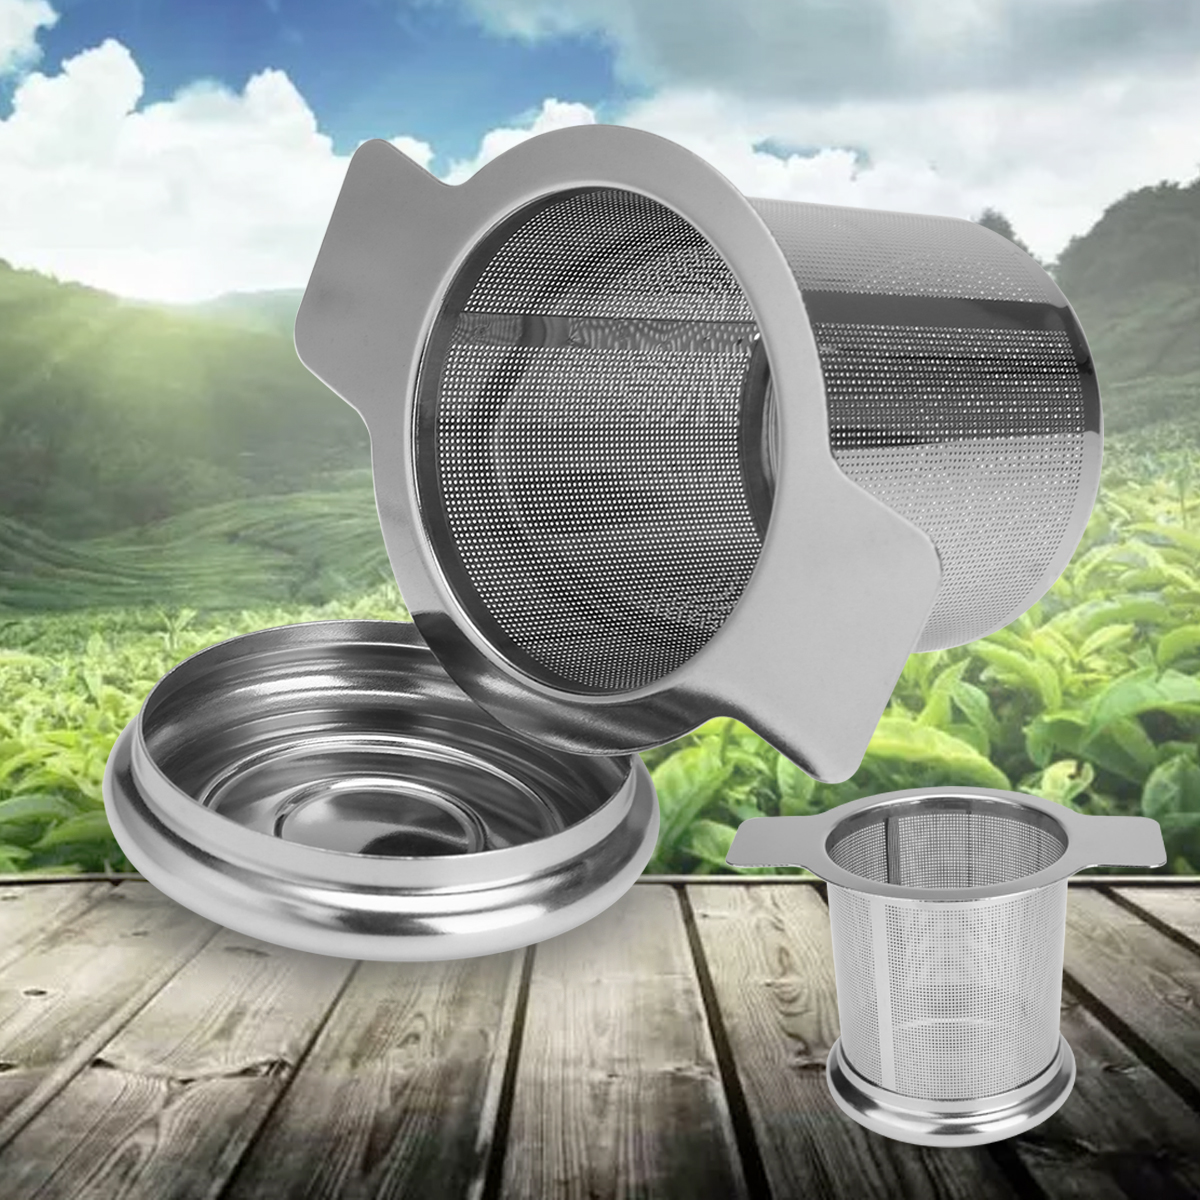 Stainless Steel Tea Mesh Infuser Metal Cup Strainer Loose Leaf Coffee Filter With Lid For Teaware Accessories